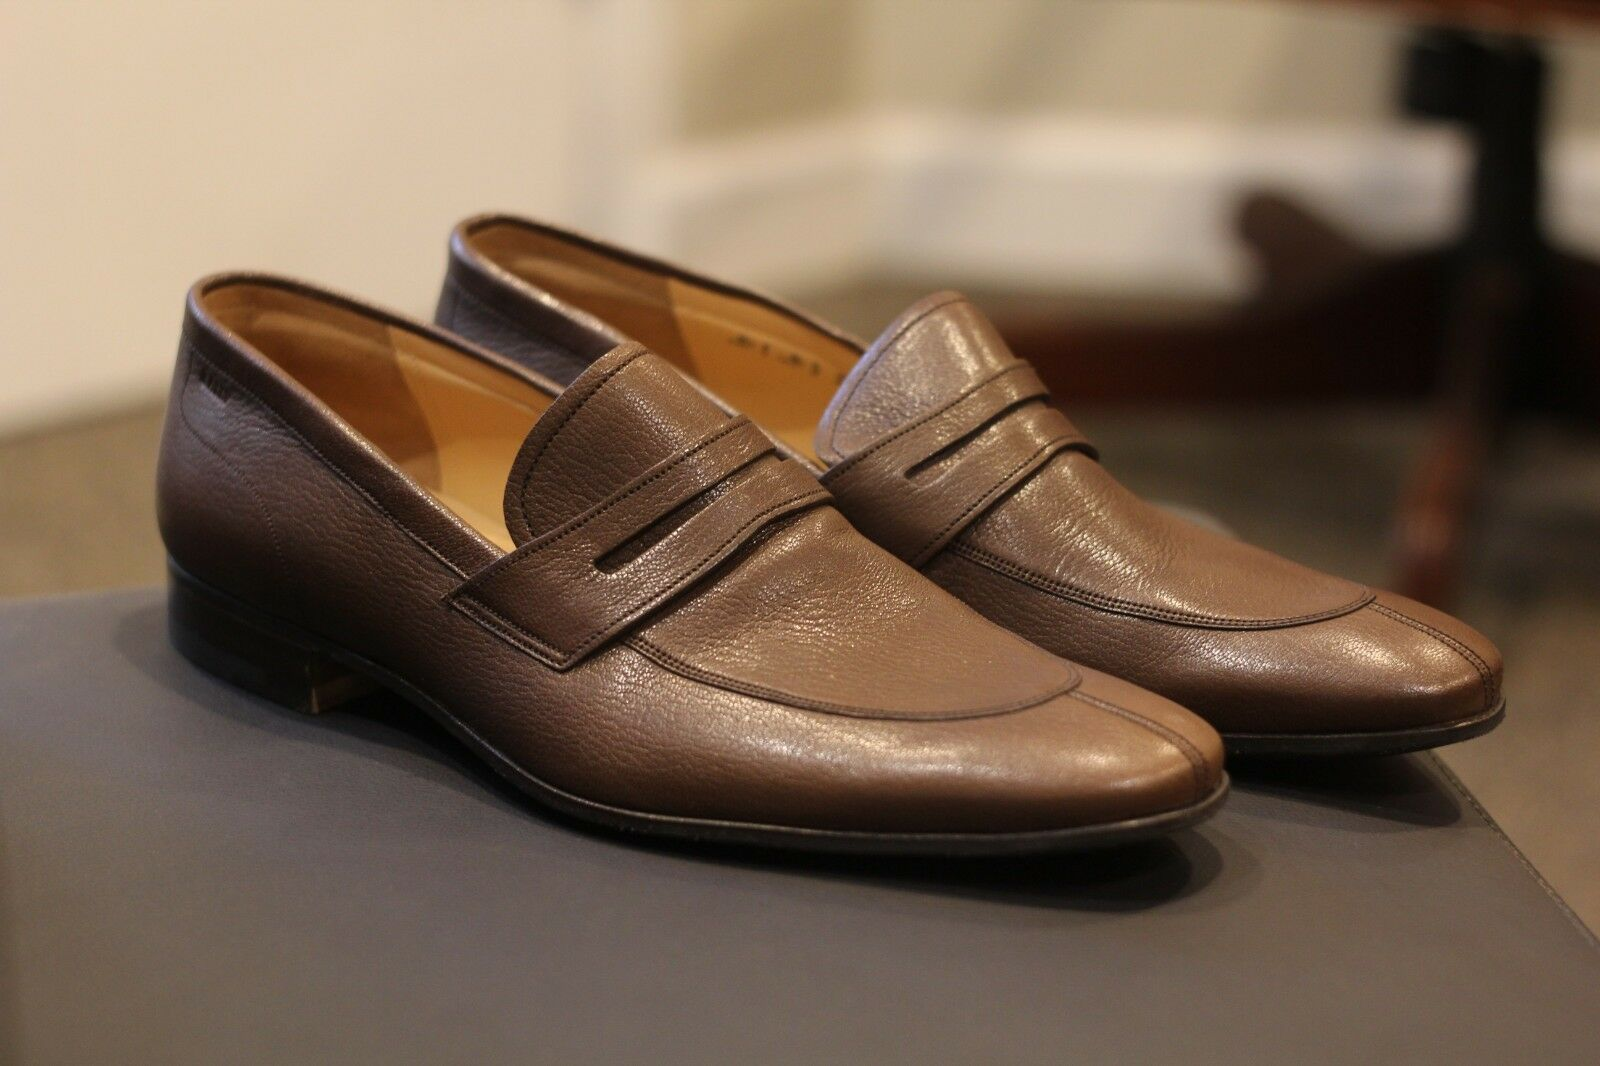 d93c04a113b Bally Dracil Mgold Brown Goat Grained shoes Penny Loafers US Sz 11.5 D  Swiss New